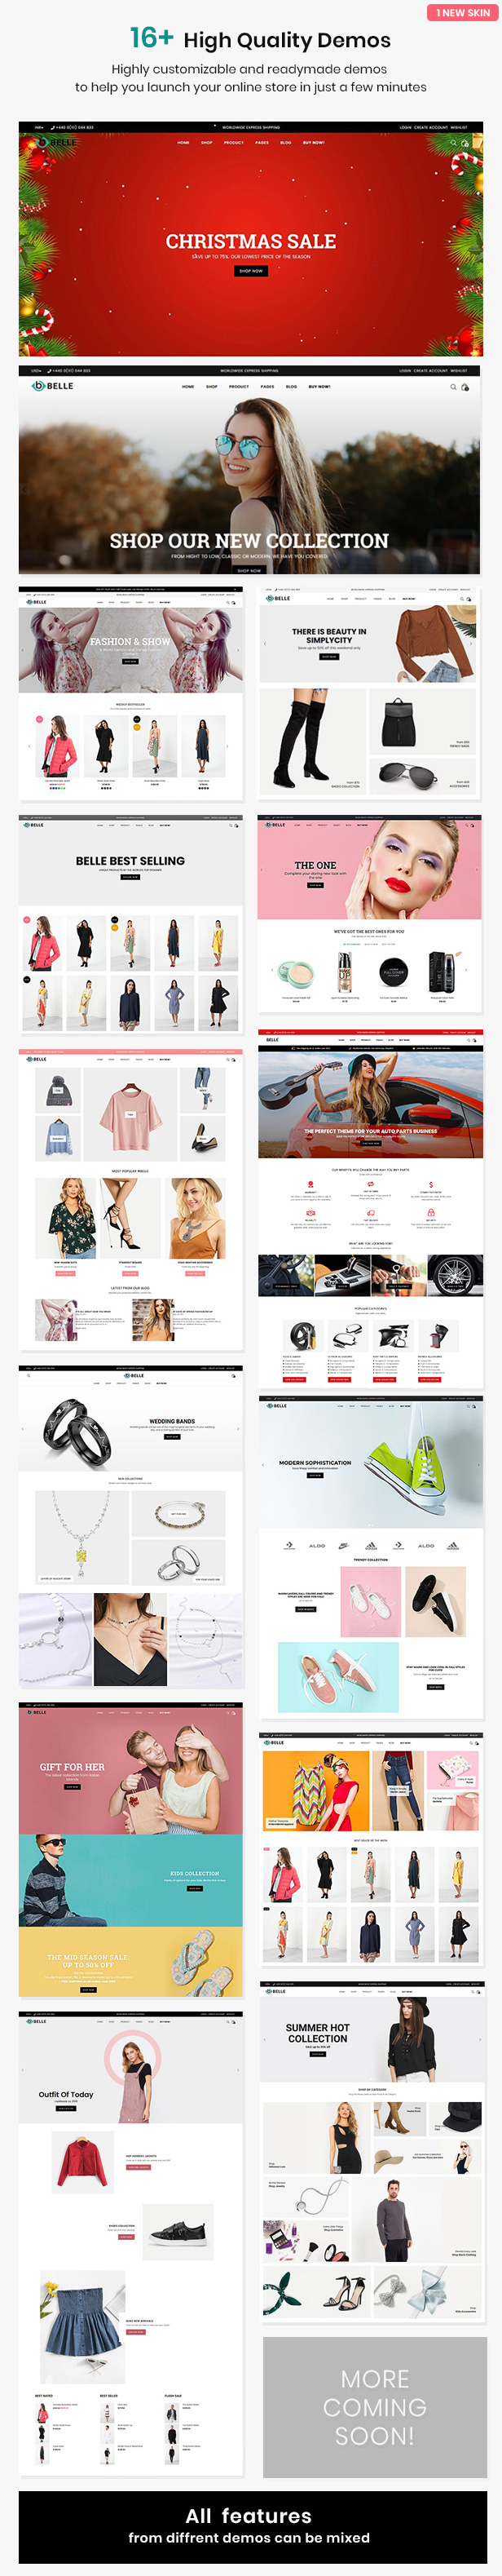 preview 2 - Belle - Clothing and Fashion Shopify Theme